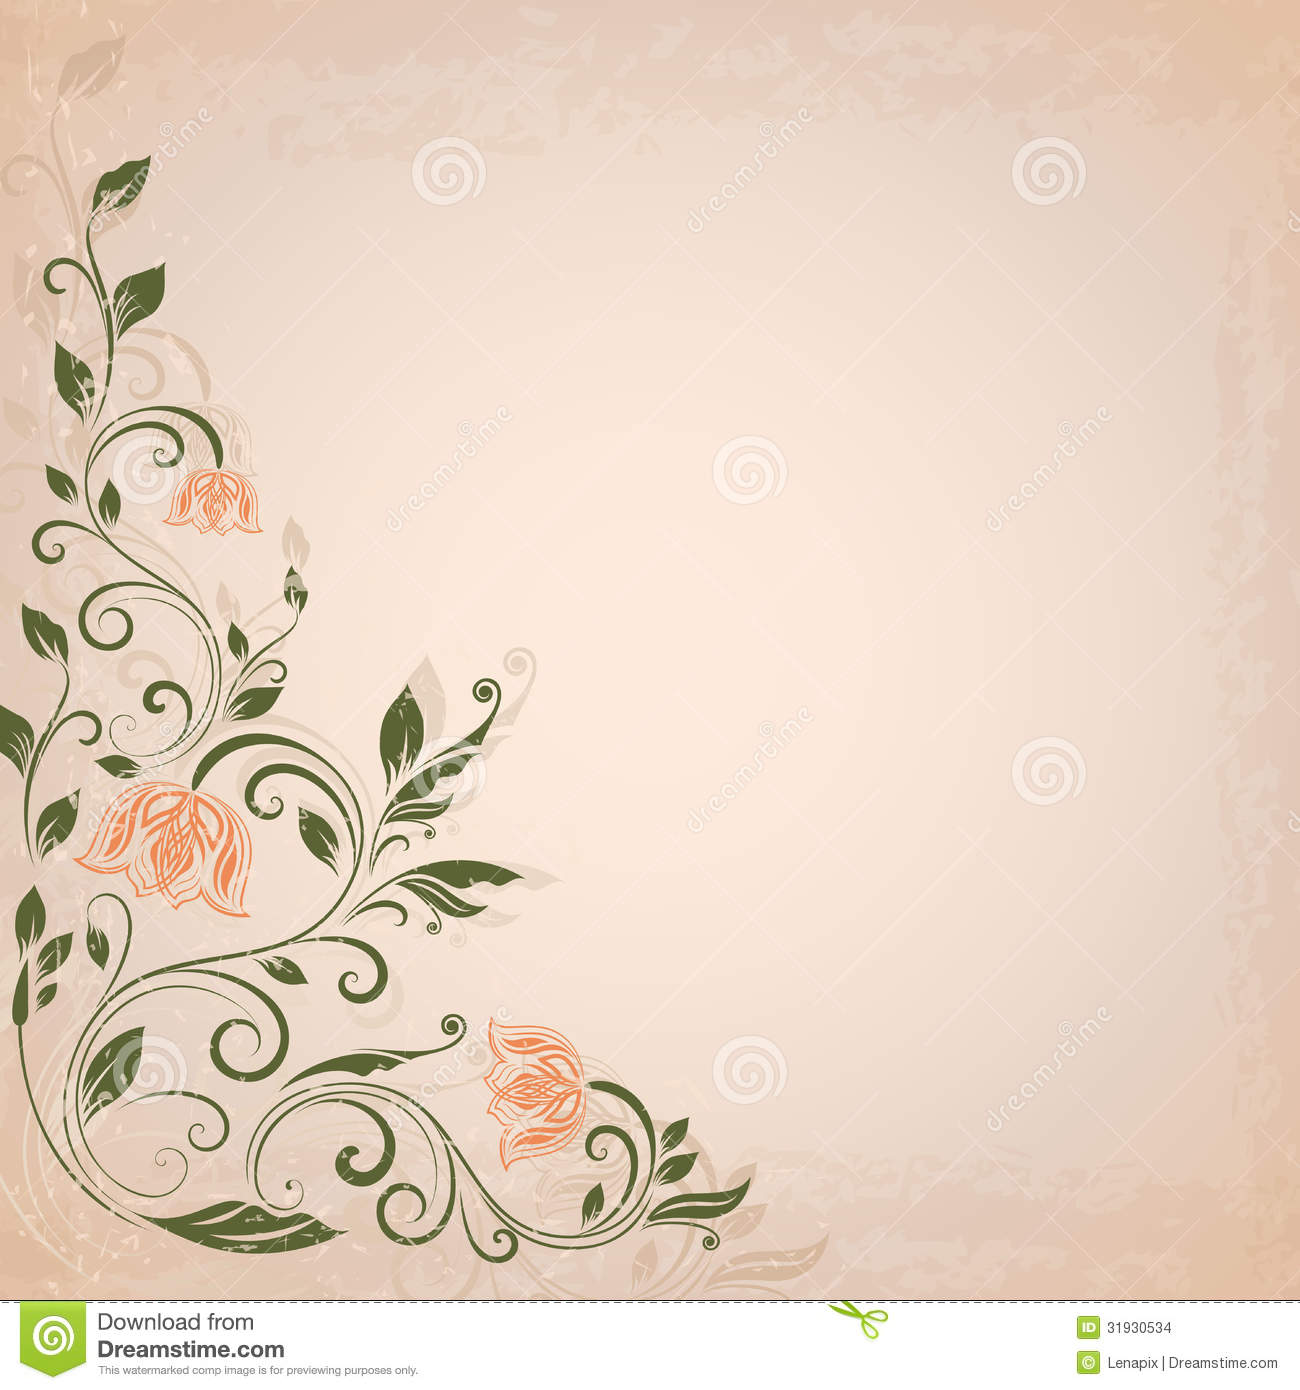 Abstract background flower vintage